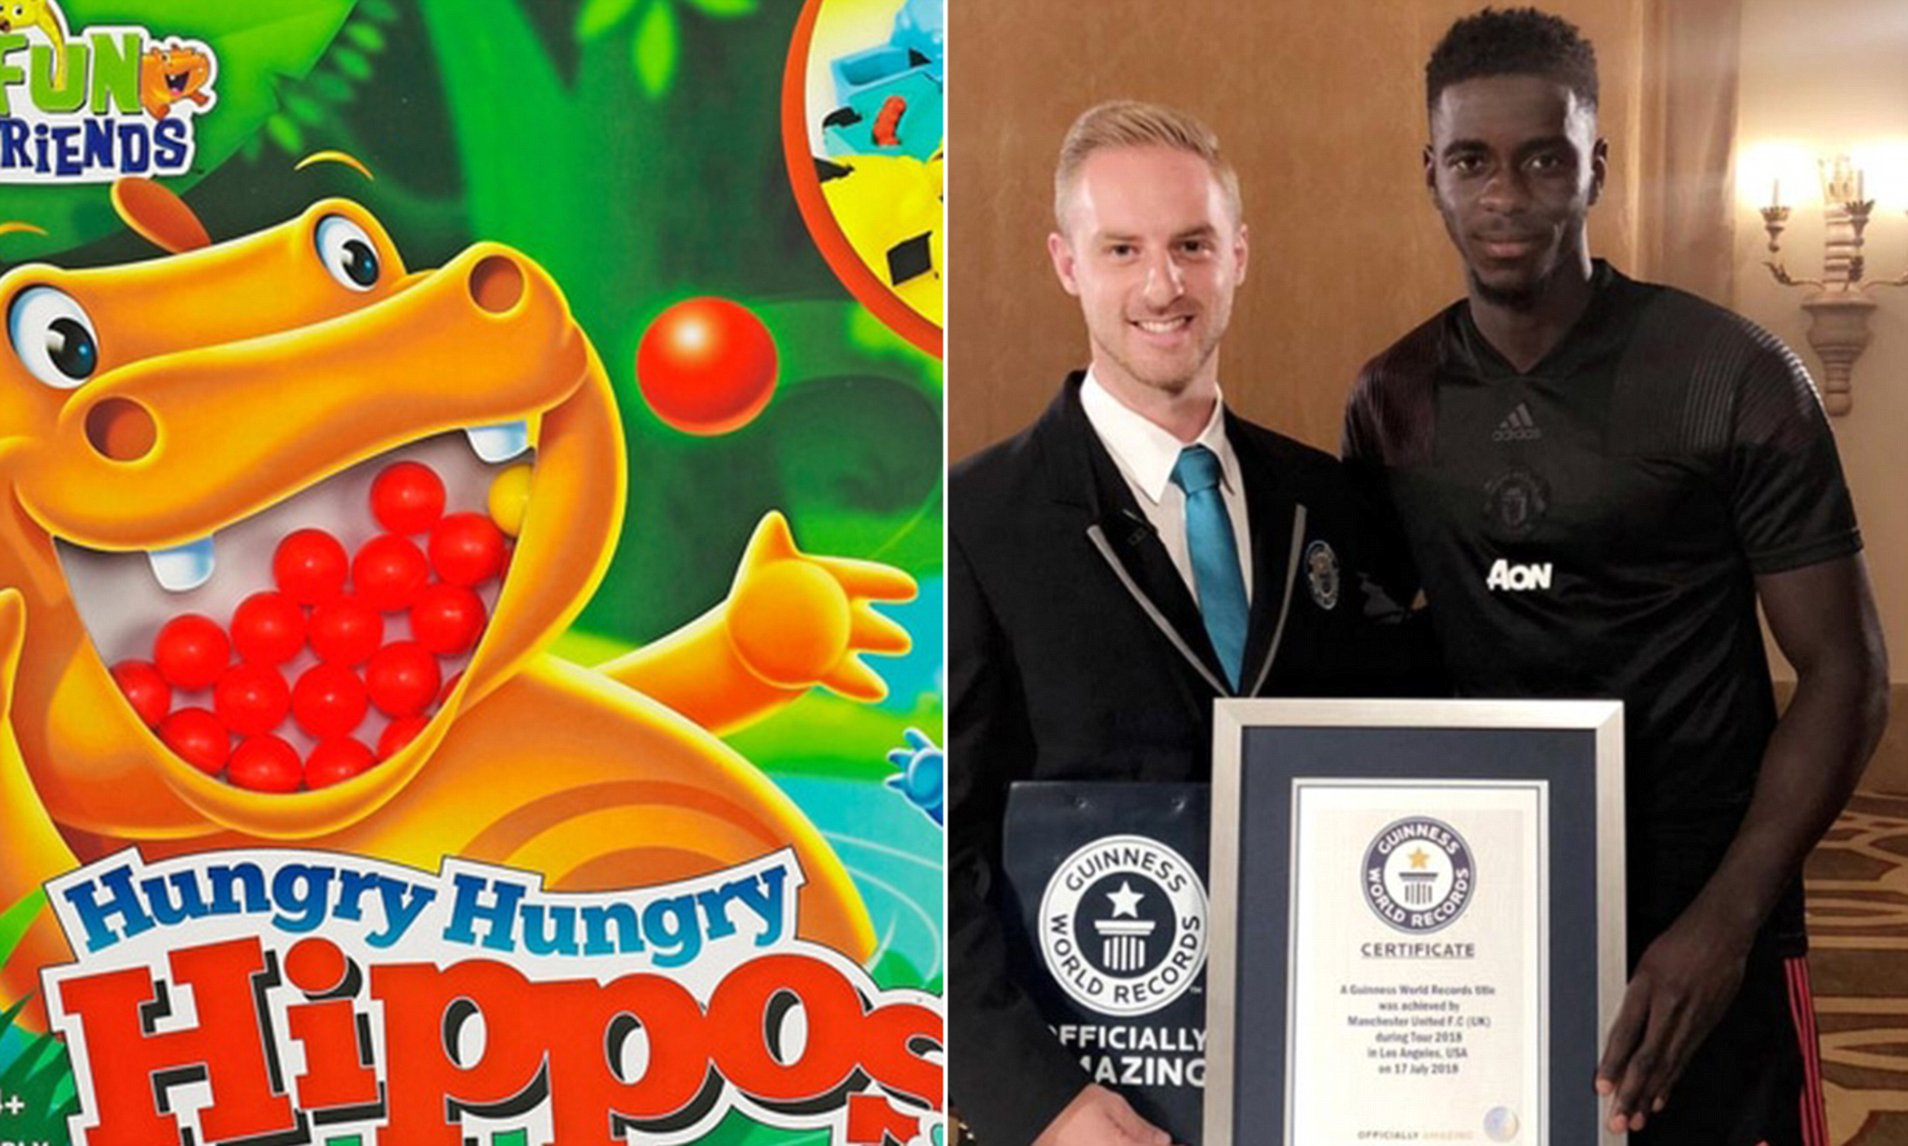 Tuanzebe guinness world records